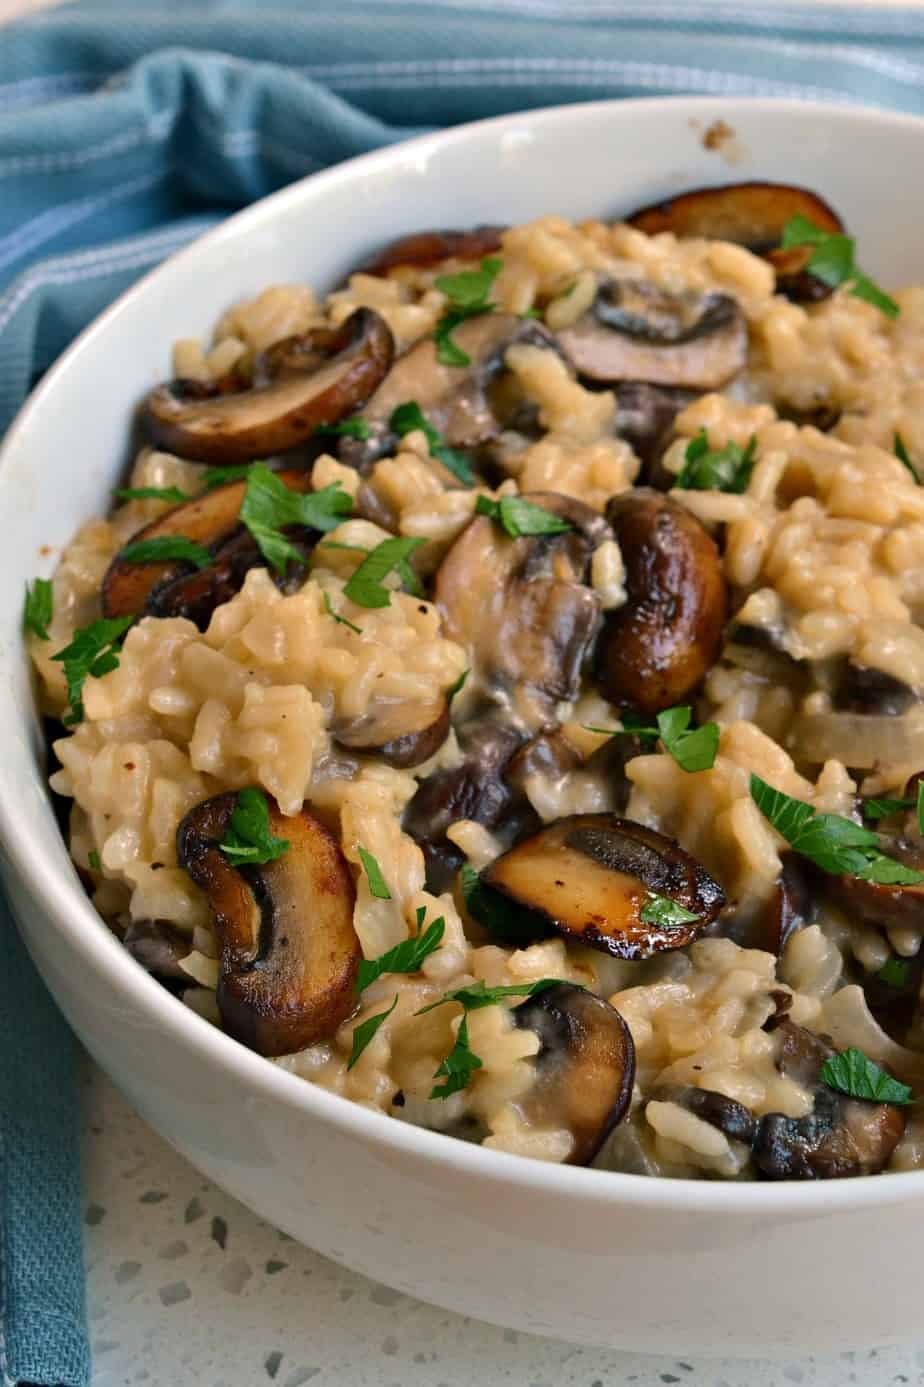 You are going to love the creaminess of this easy to make mushroom risotto.